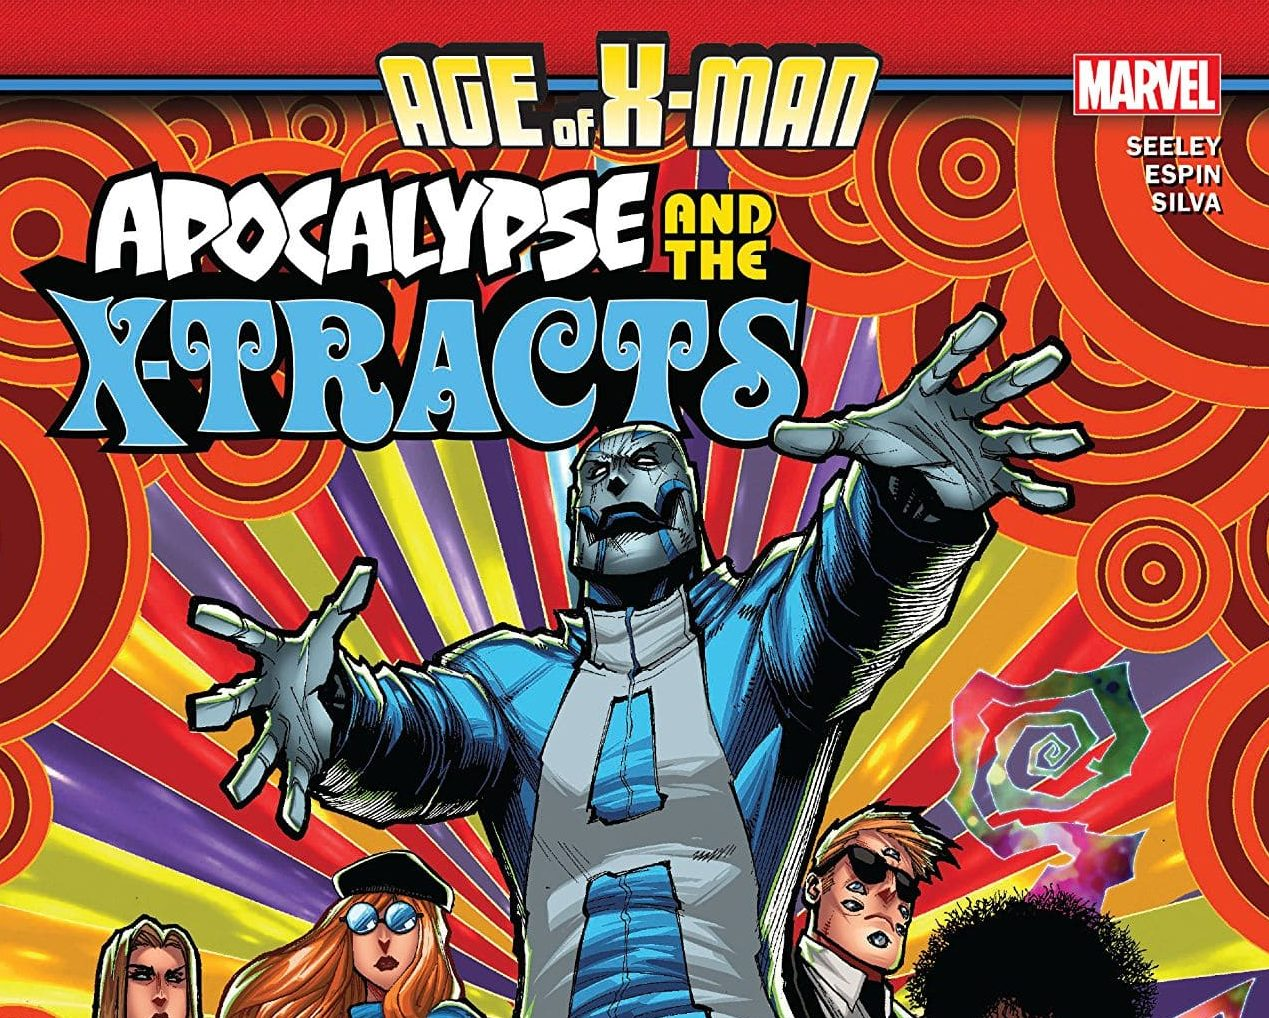 'Apocalypse and the X-Tracts' review -- super groovy or an 'Age of X-Man' buzzkill?